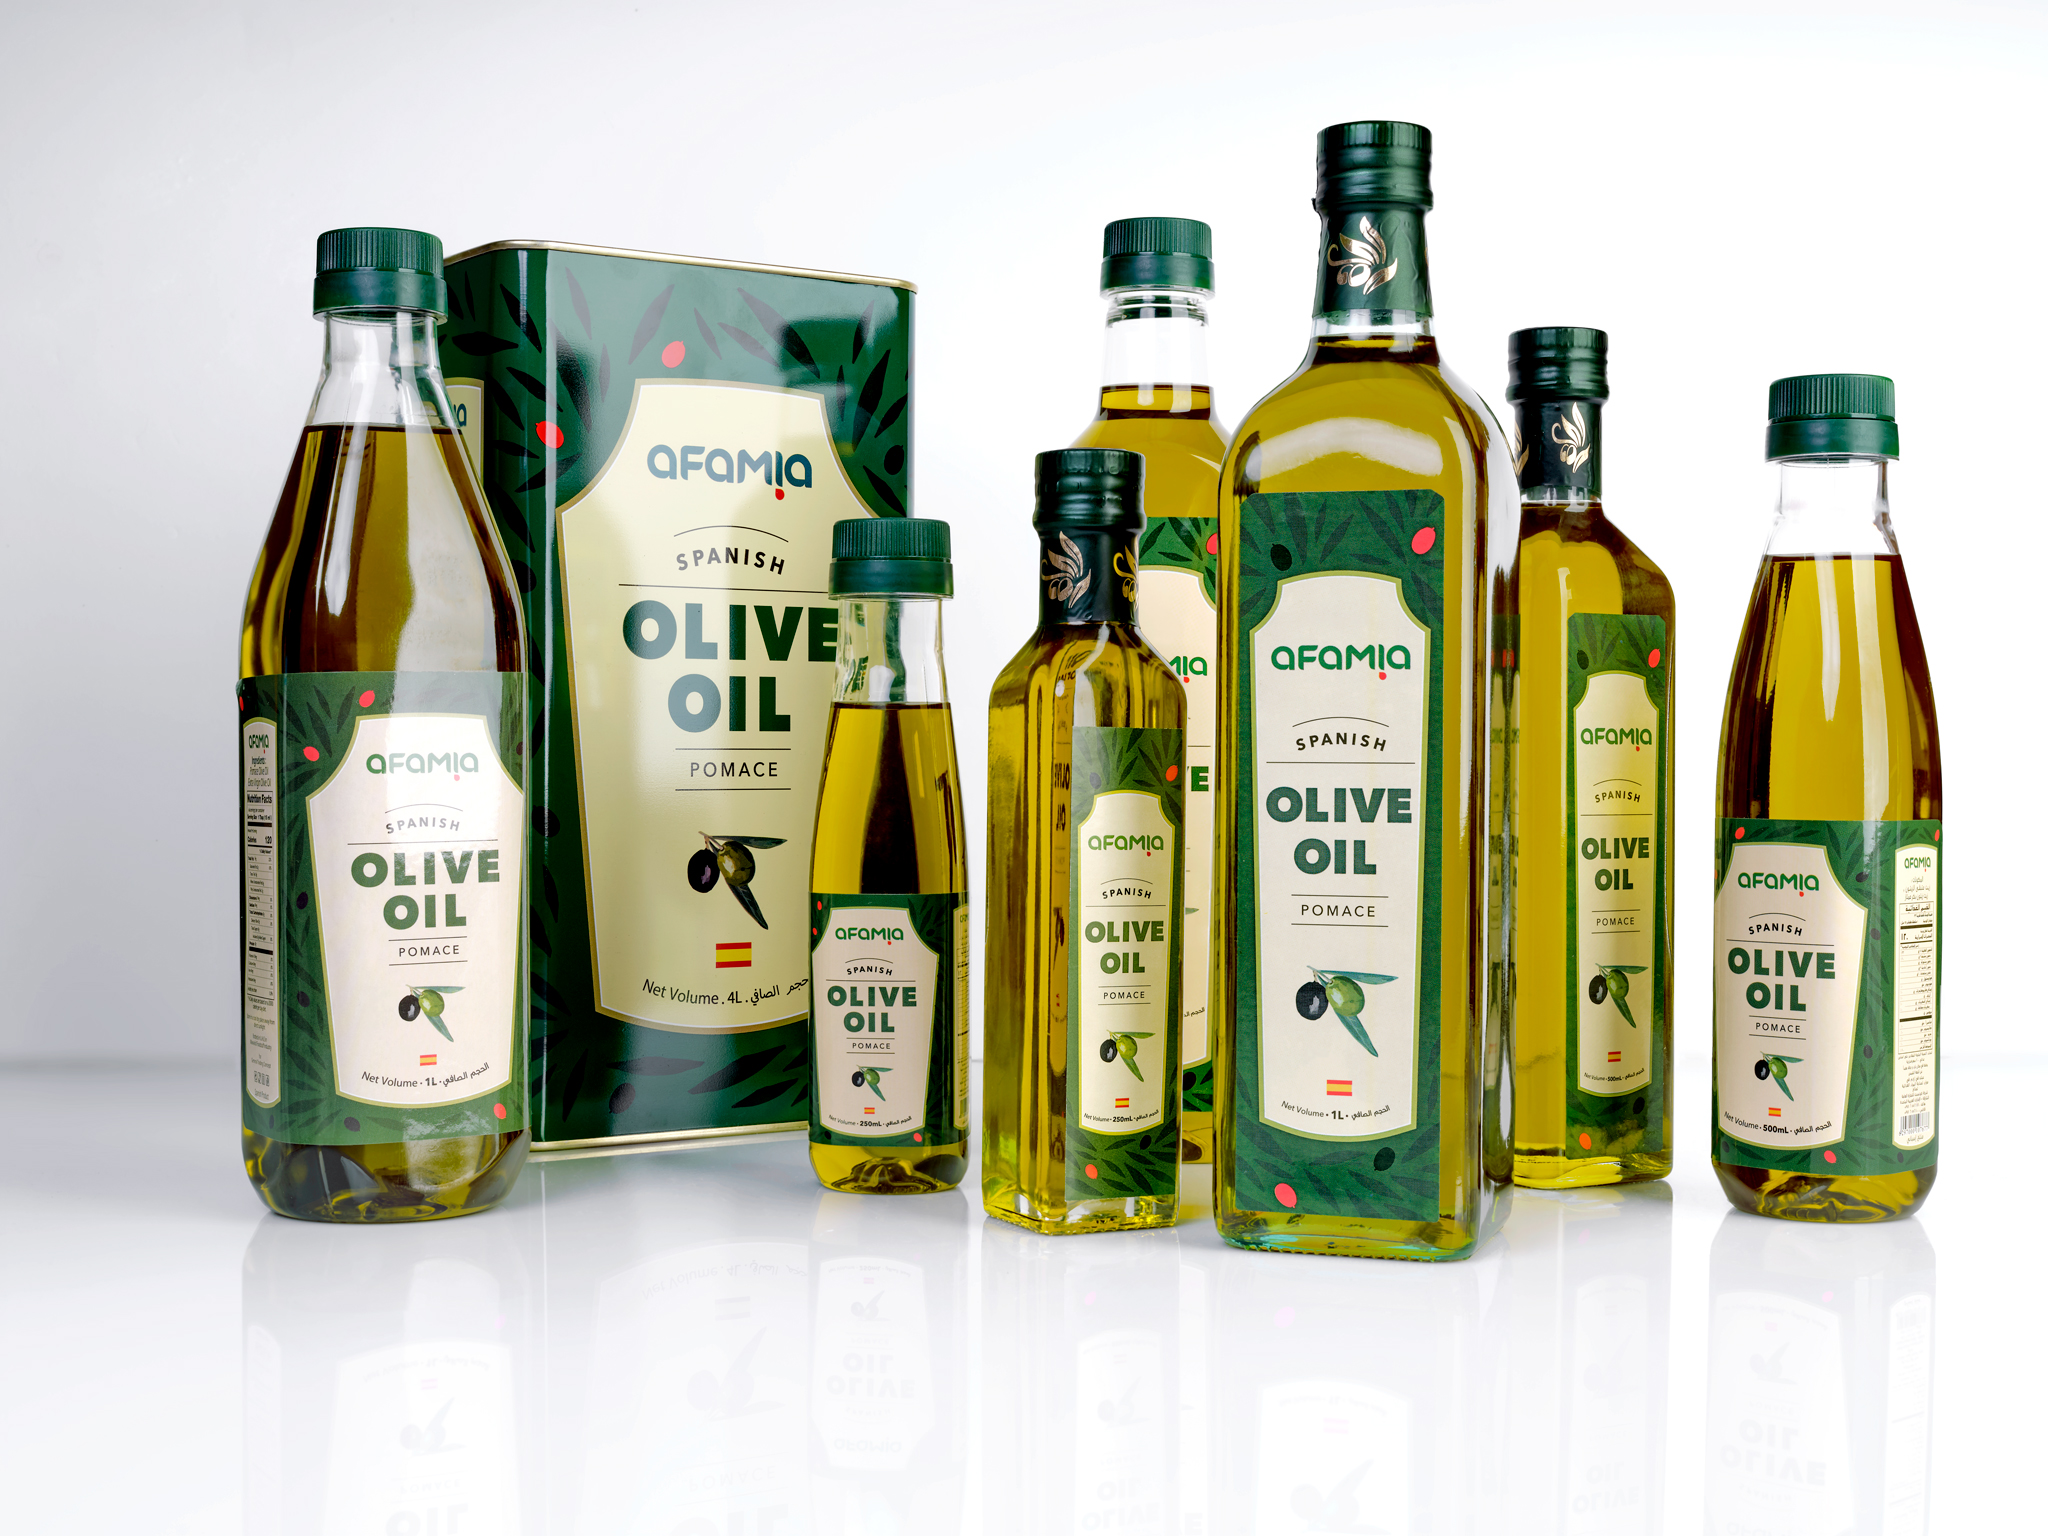 Afamia- Olive Oil